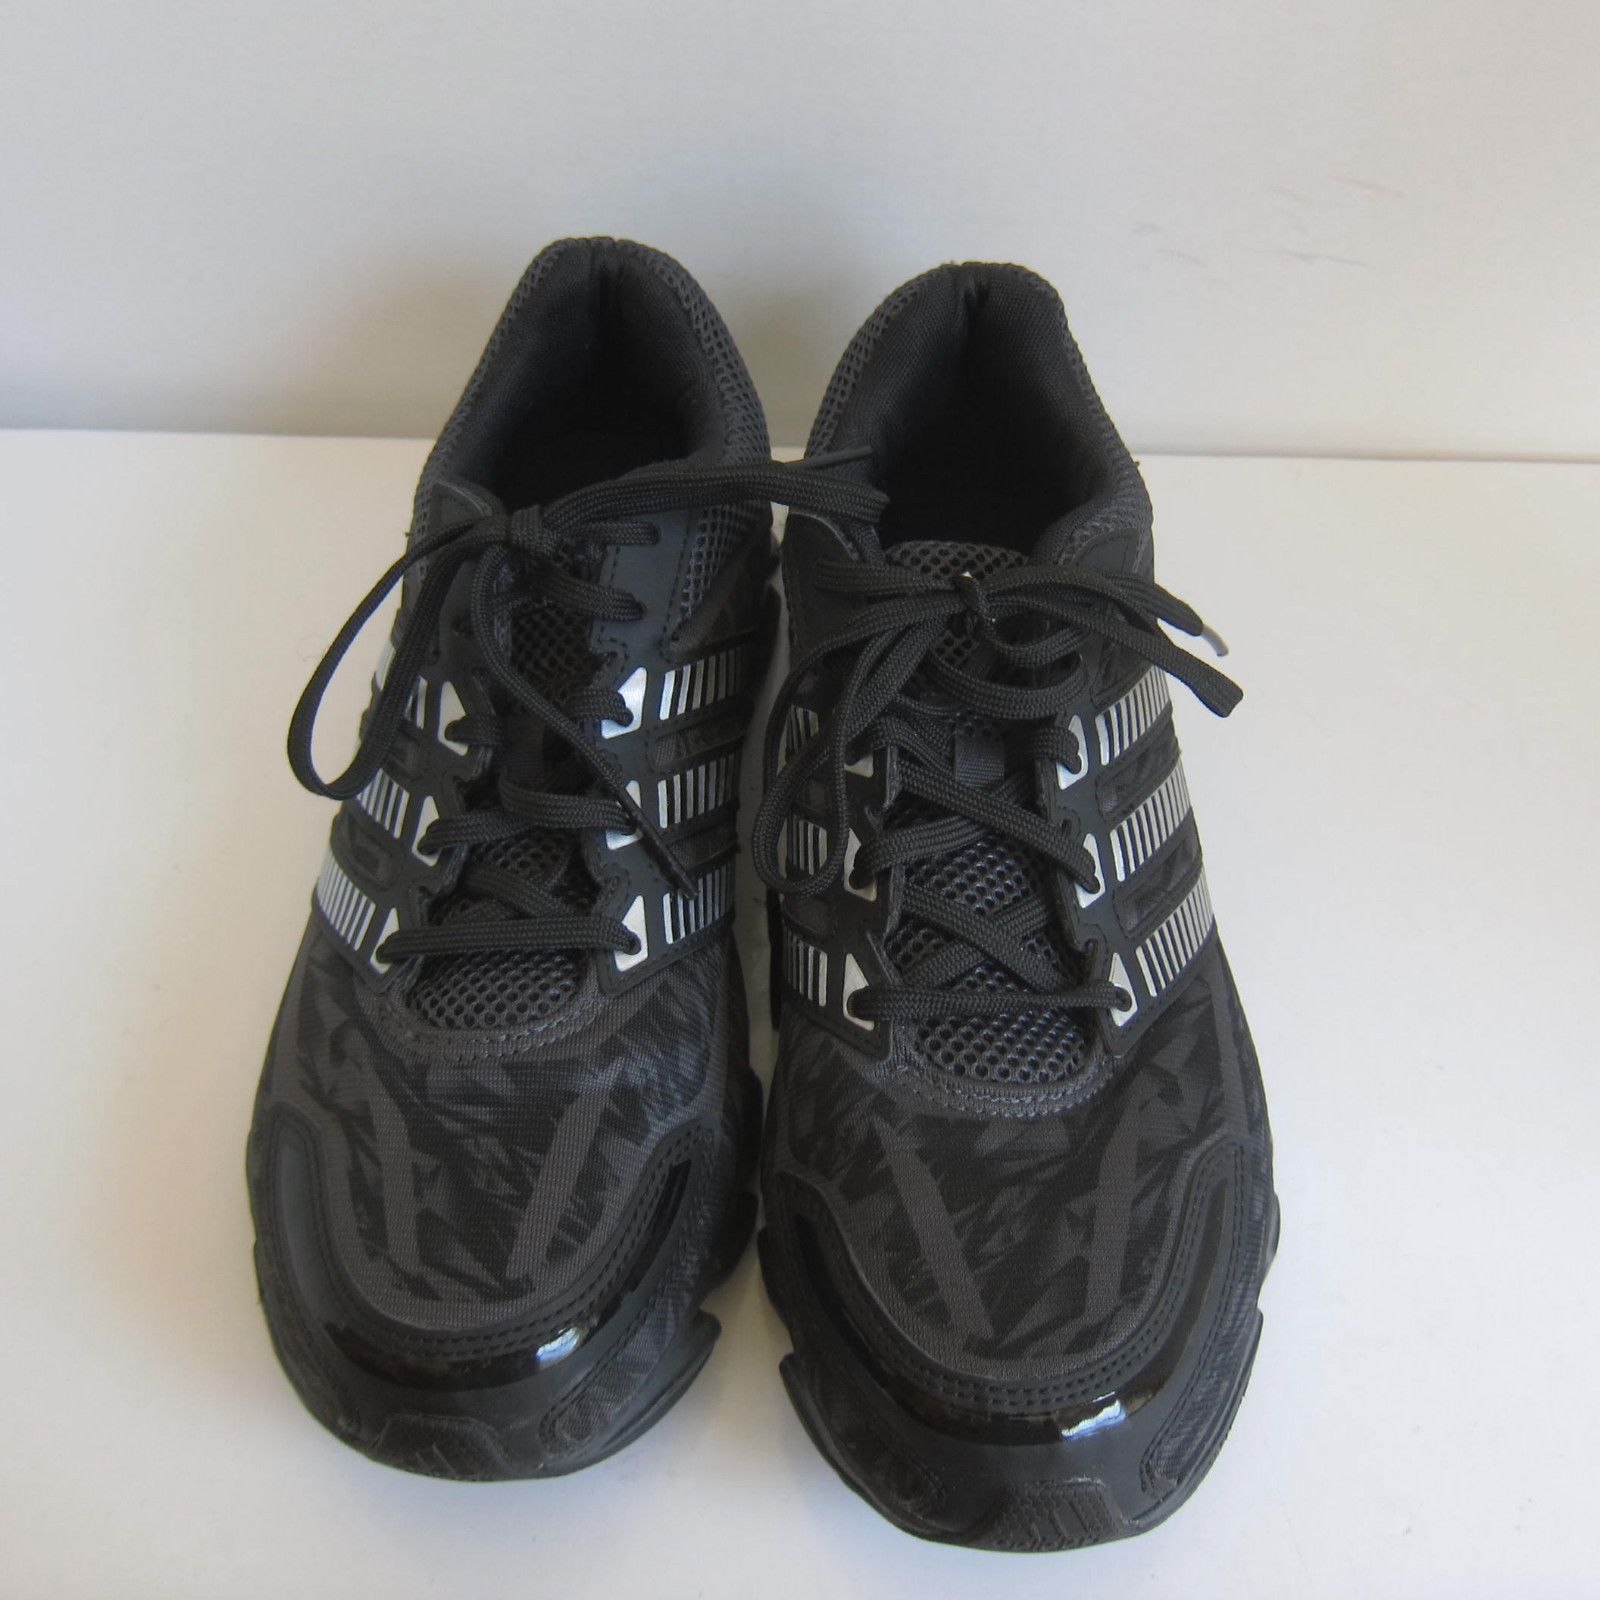 online retailer a68a8 74b62 C-1347 New Adidas Black Nylon Adiprene + Sneakers Shoes Size US 8